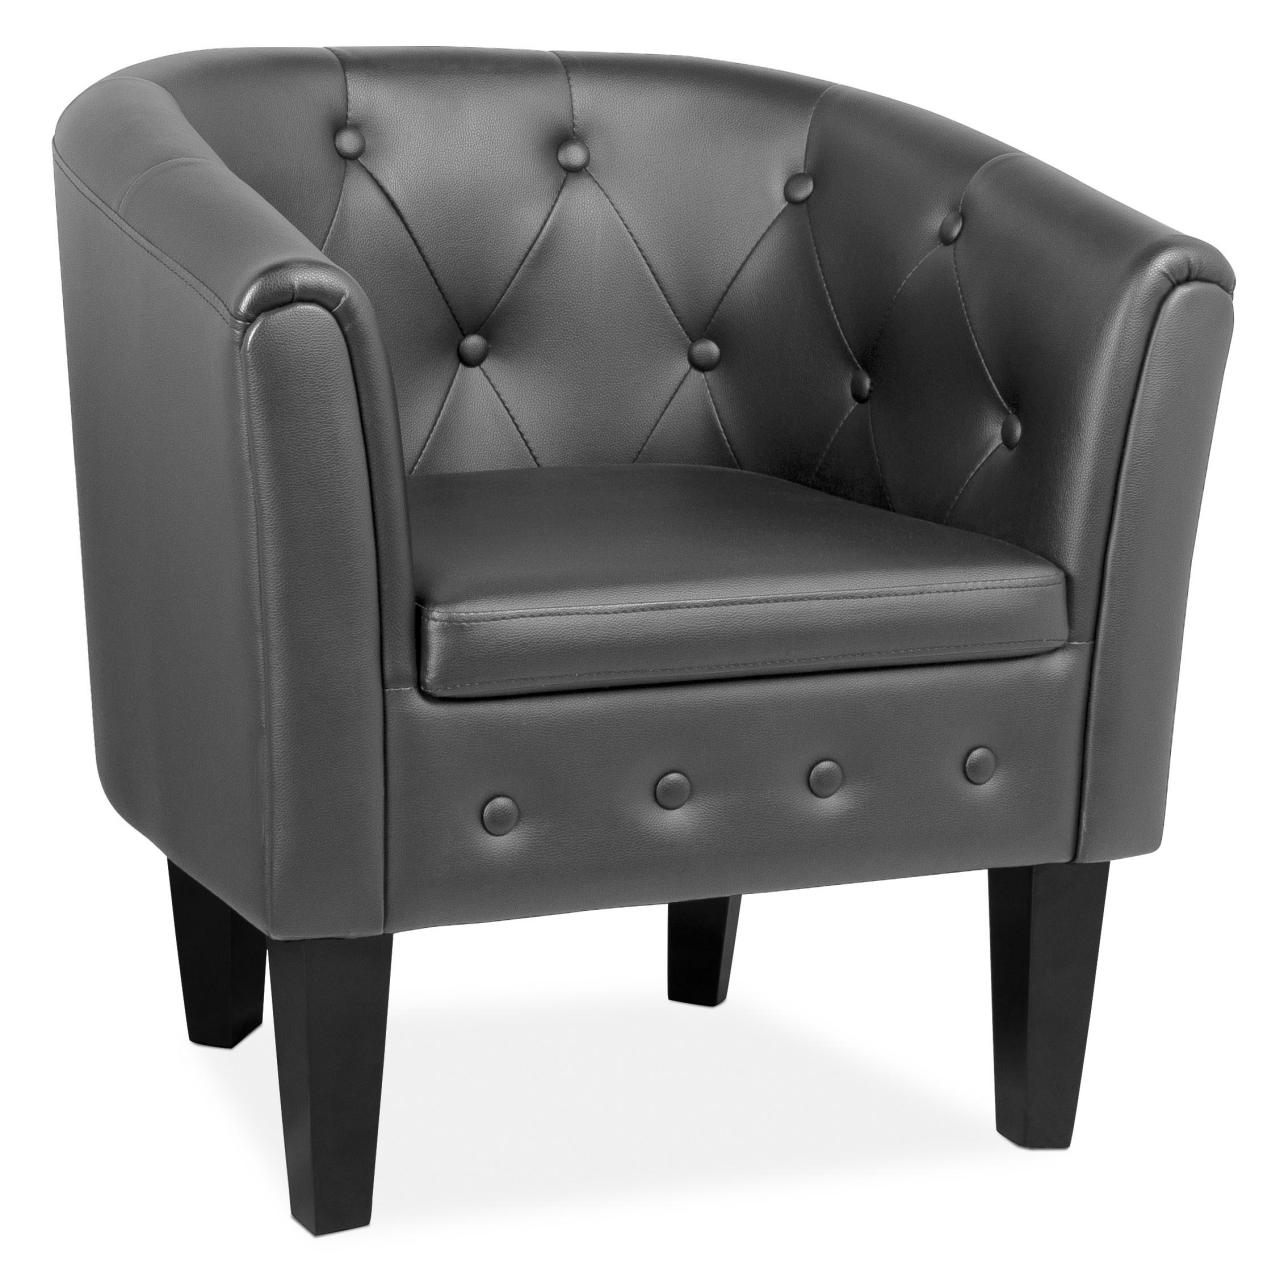 Lounge Sessel Chesterfield Chesterfield Sessel Lounge Couch Sofa Büro Möbel Club